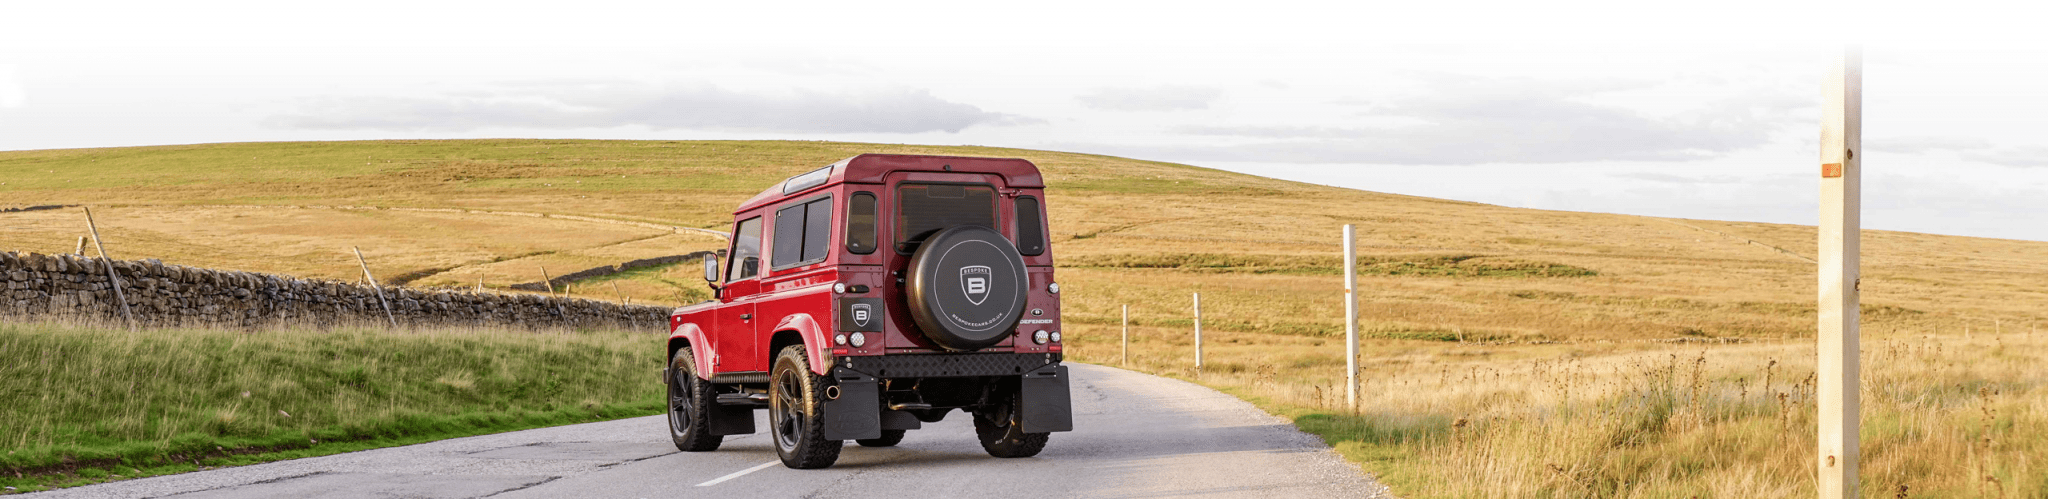 BESPOKE Defenders - Harrogate - North Yorkshire - HG32BX - Land Rover Defender Specialists